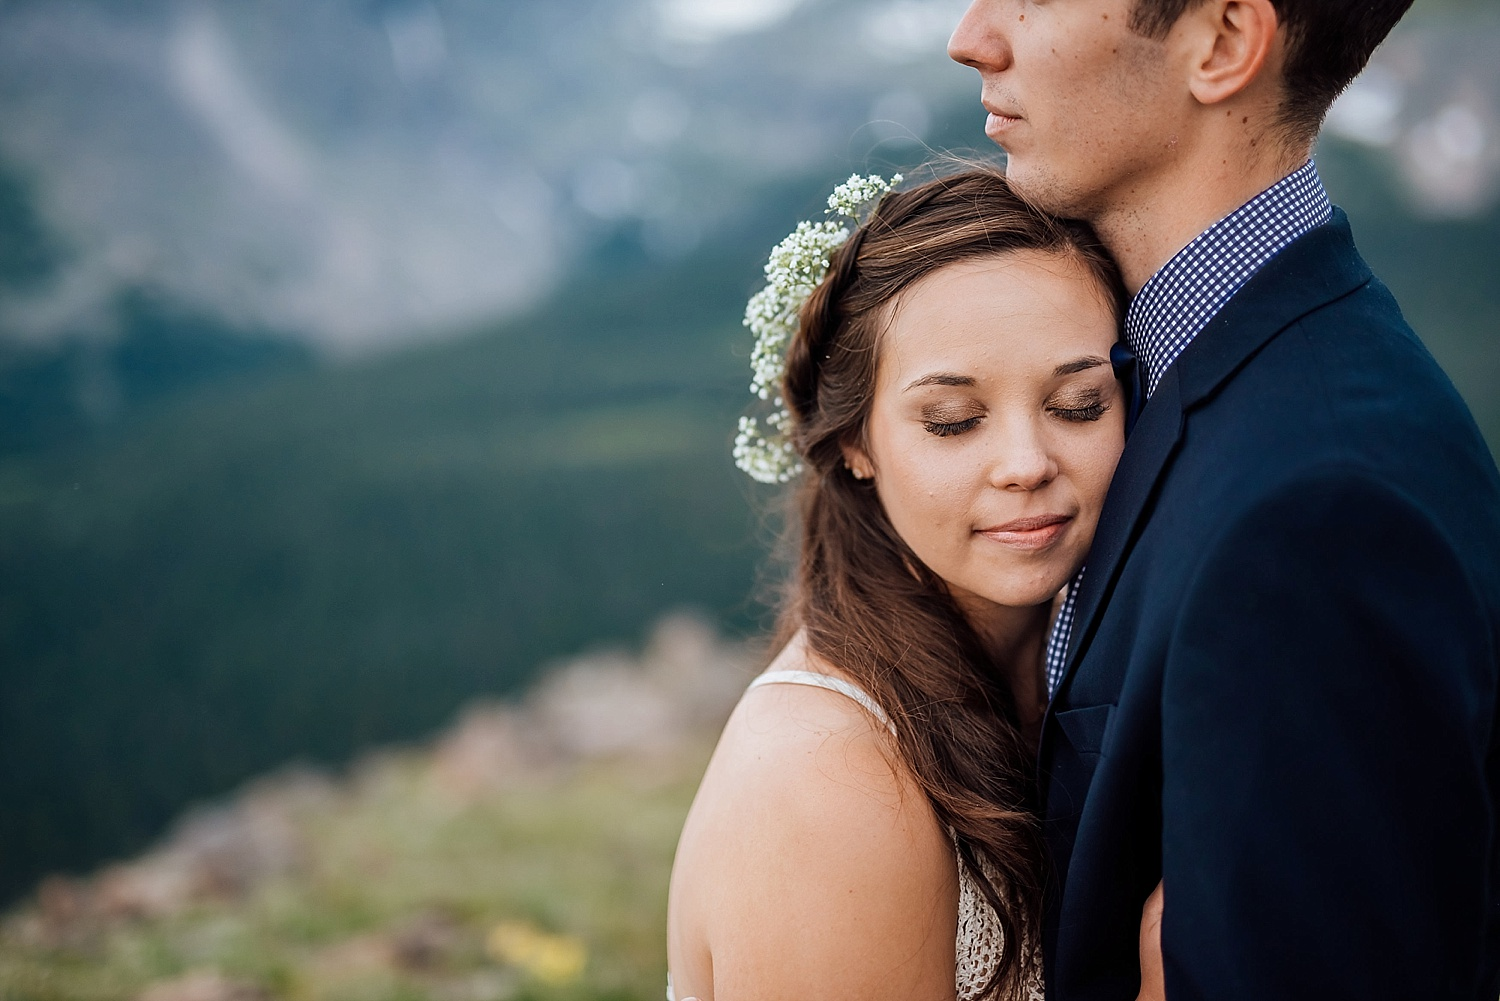 This bride had a beautiful flower crown made for her stunning mountain wedding. Photo by Maddie Mae Photography.